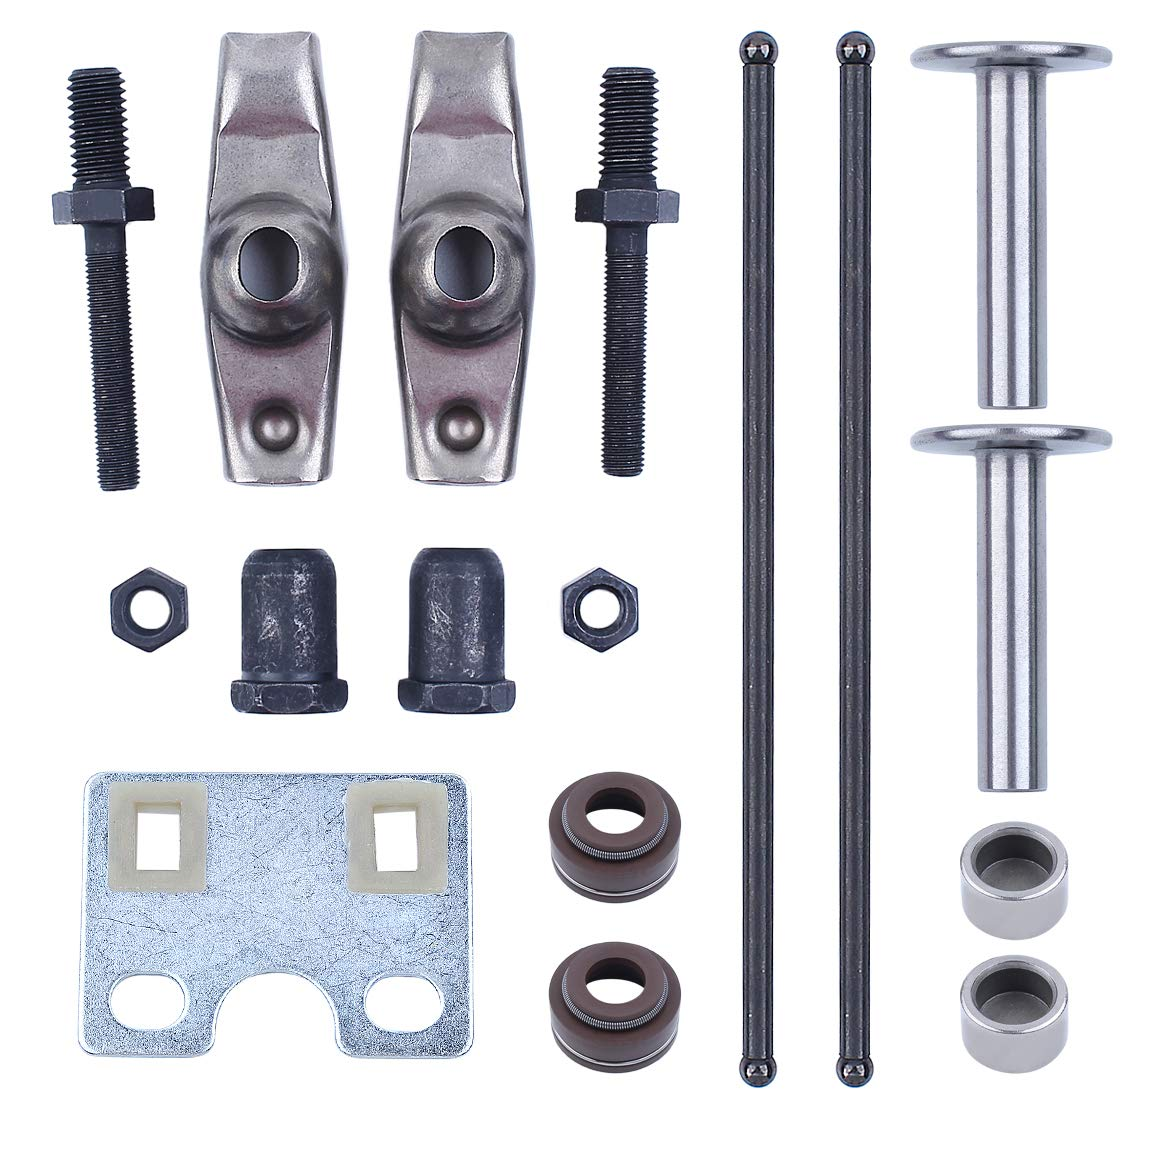 Haishine Valve Push Rod Guide Plate Rocker Arm Lifter Tappet Stem Seal Kit for Honda GX340 GX390 188F 5KW 6.5KW Generator Engine Motor